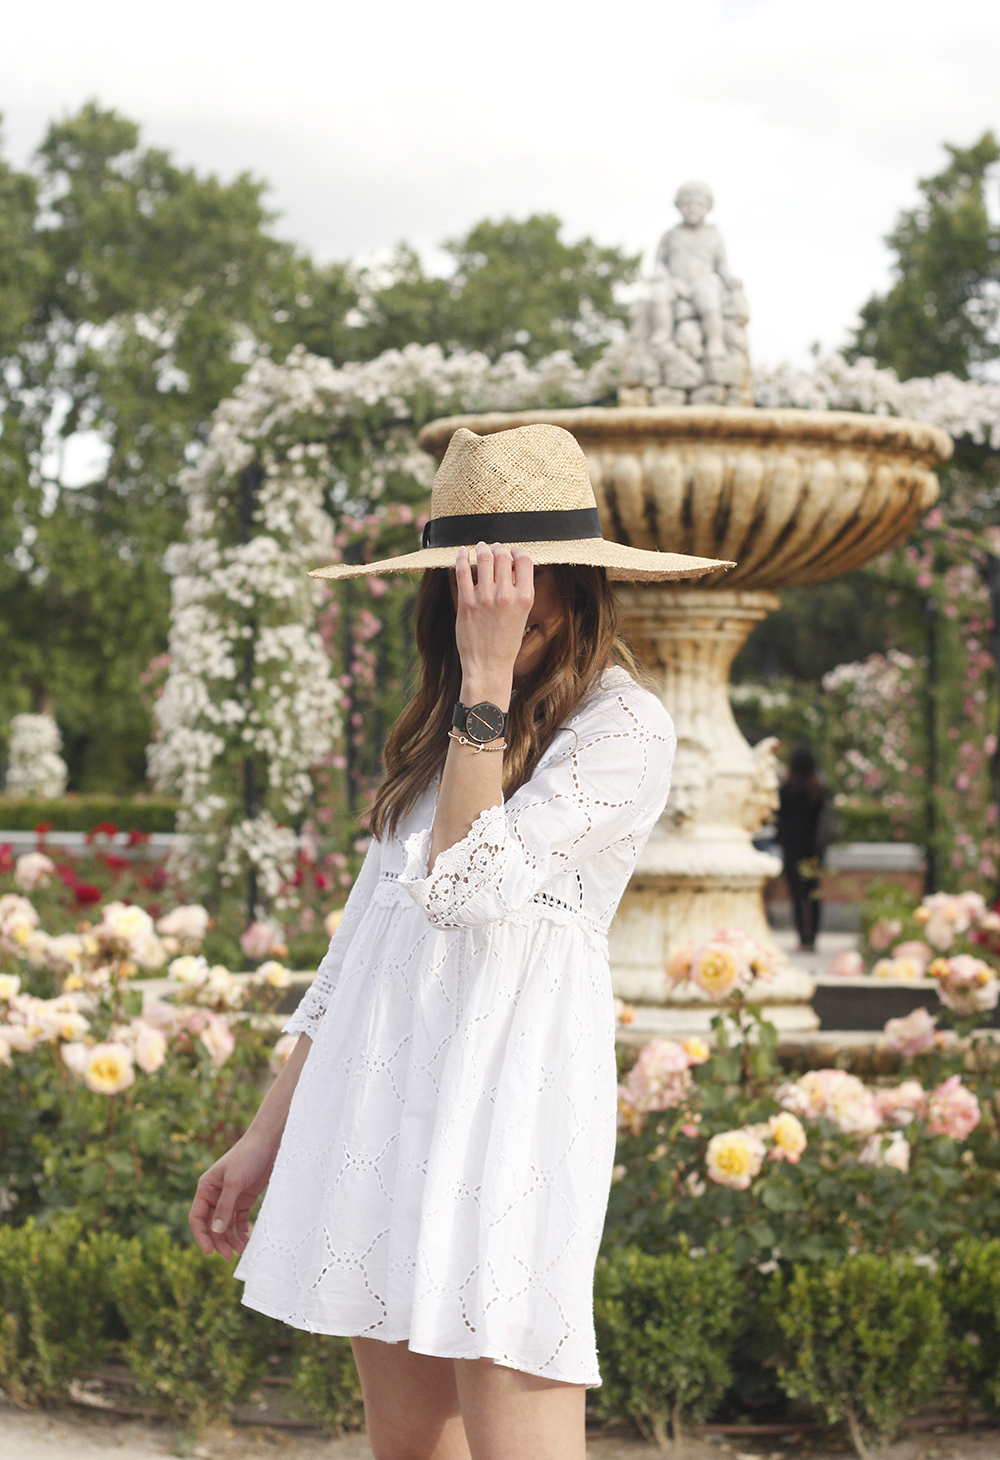 white summer dress givenchy bag street style outfit 2018 el retiro18